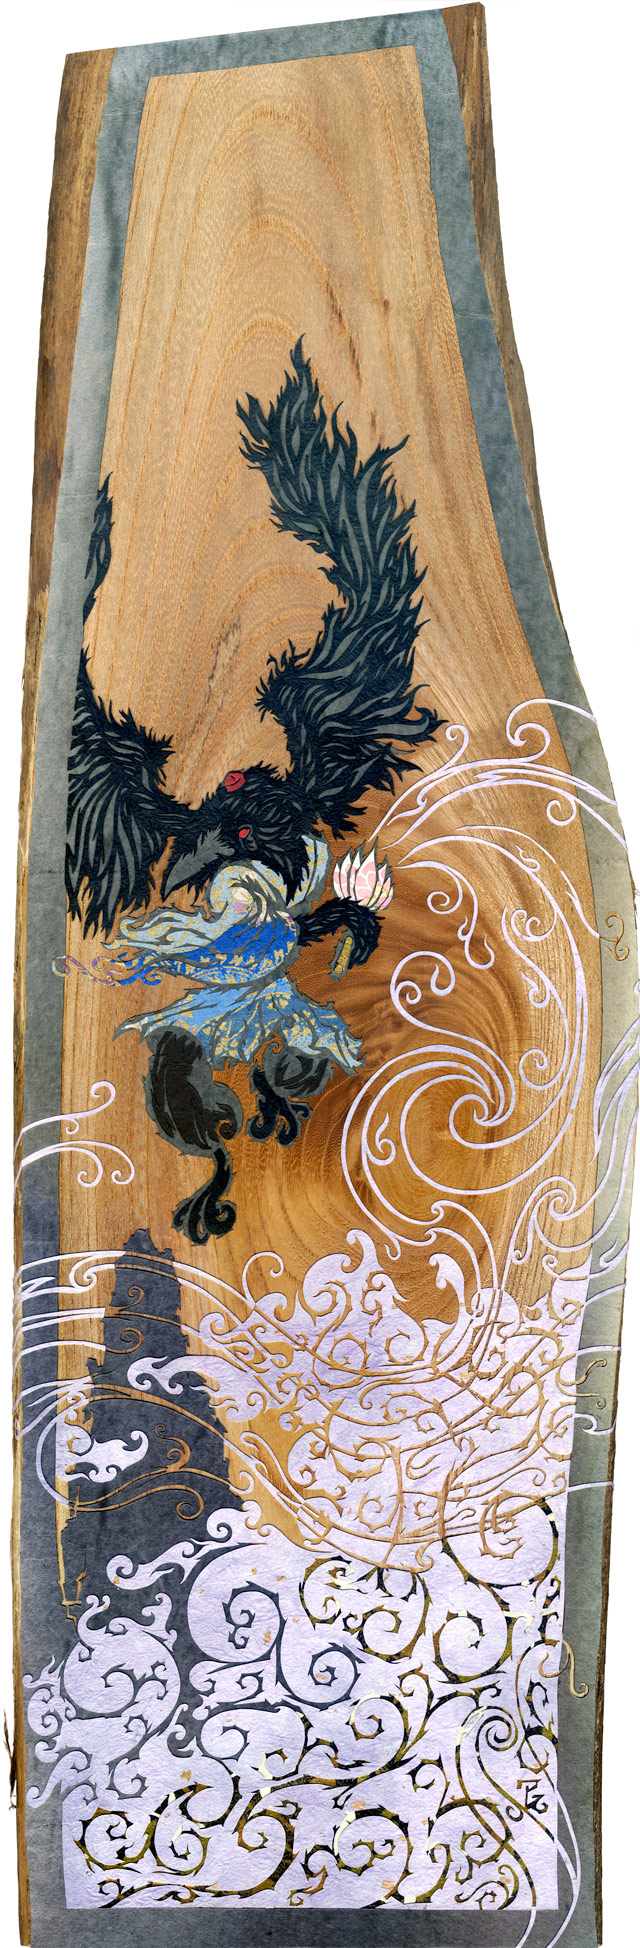 Upon Black Wings, A Howling Wind size: 6.5 x 19.7 in • 165 x 500 mm medium: cut washi + chiyogami paper / wood